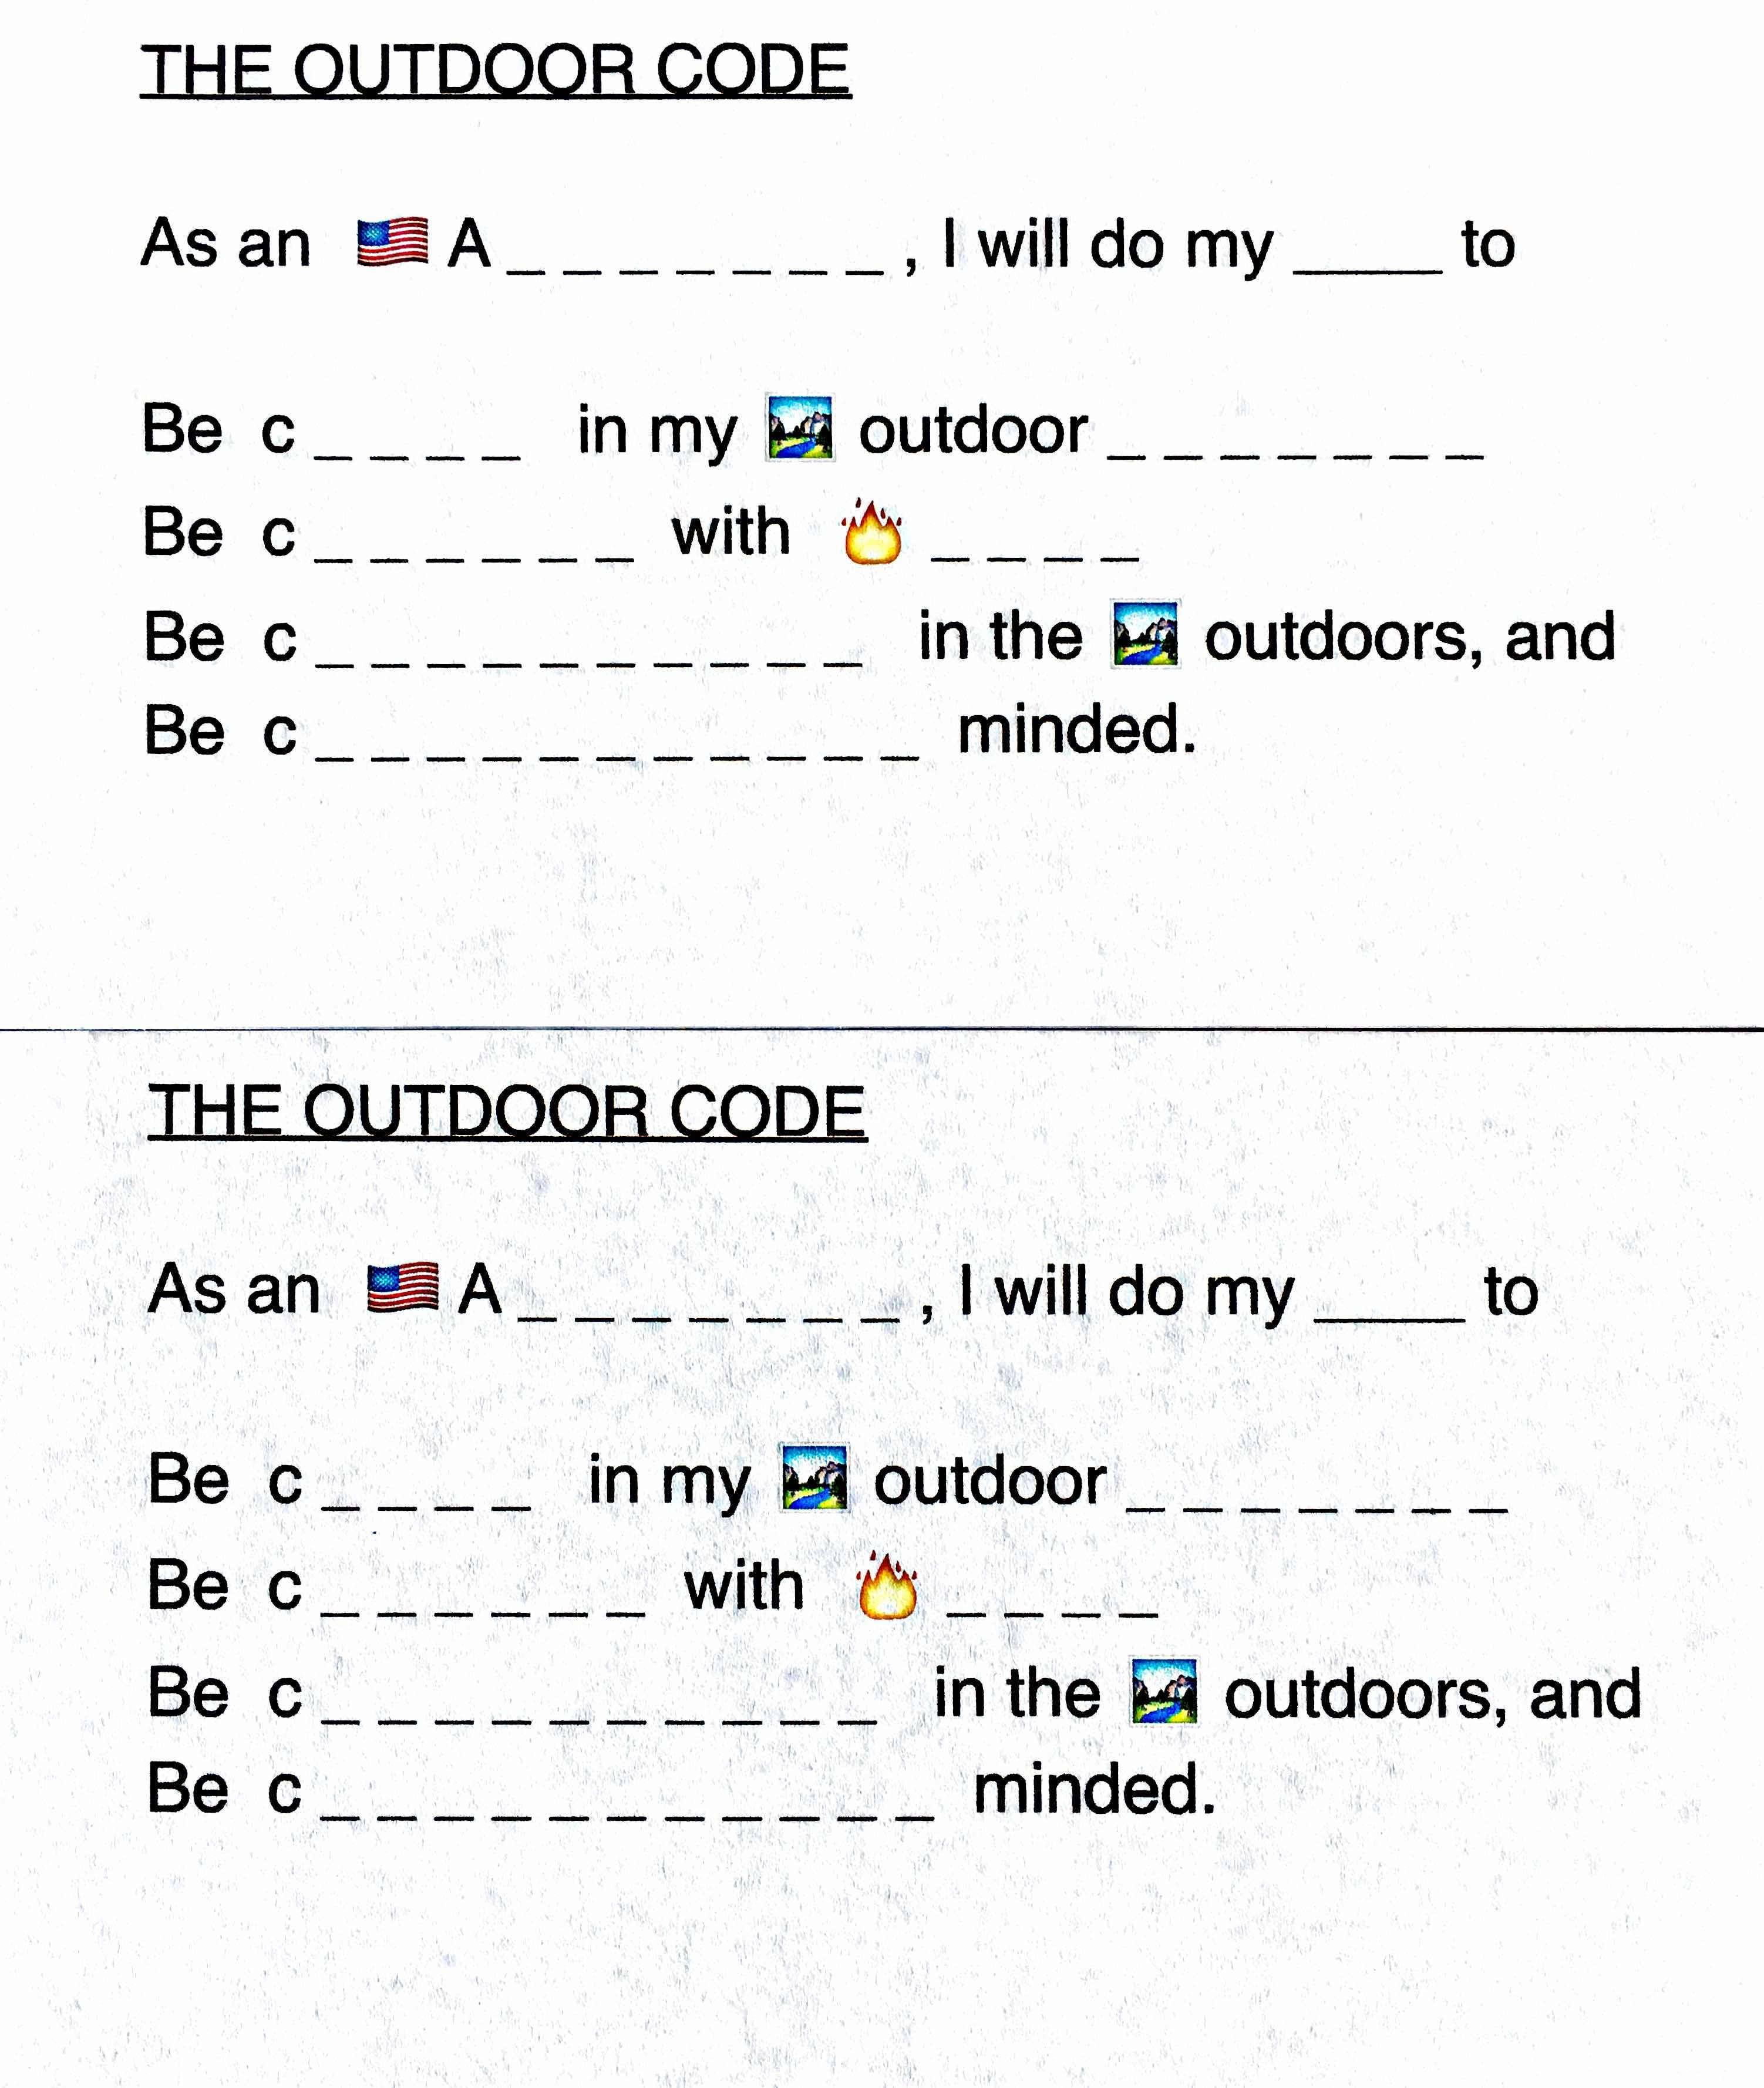 Worksheets Cub Scout Belt Loop Worksheets cub scout outdoor code webelos pinterest scouts wolf code